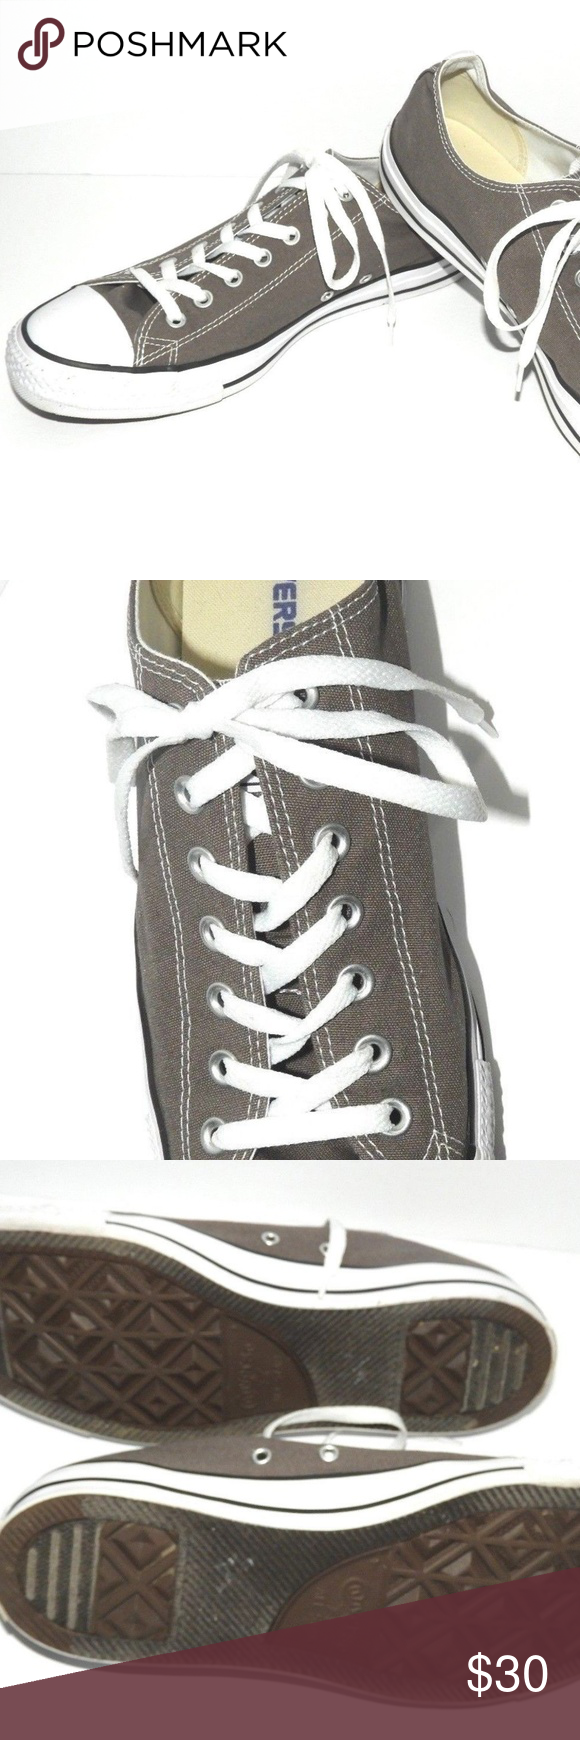 Mens Converse All Star Shoes Size 12 In 2018 My Posh Closet